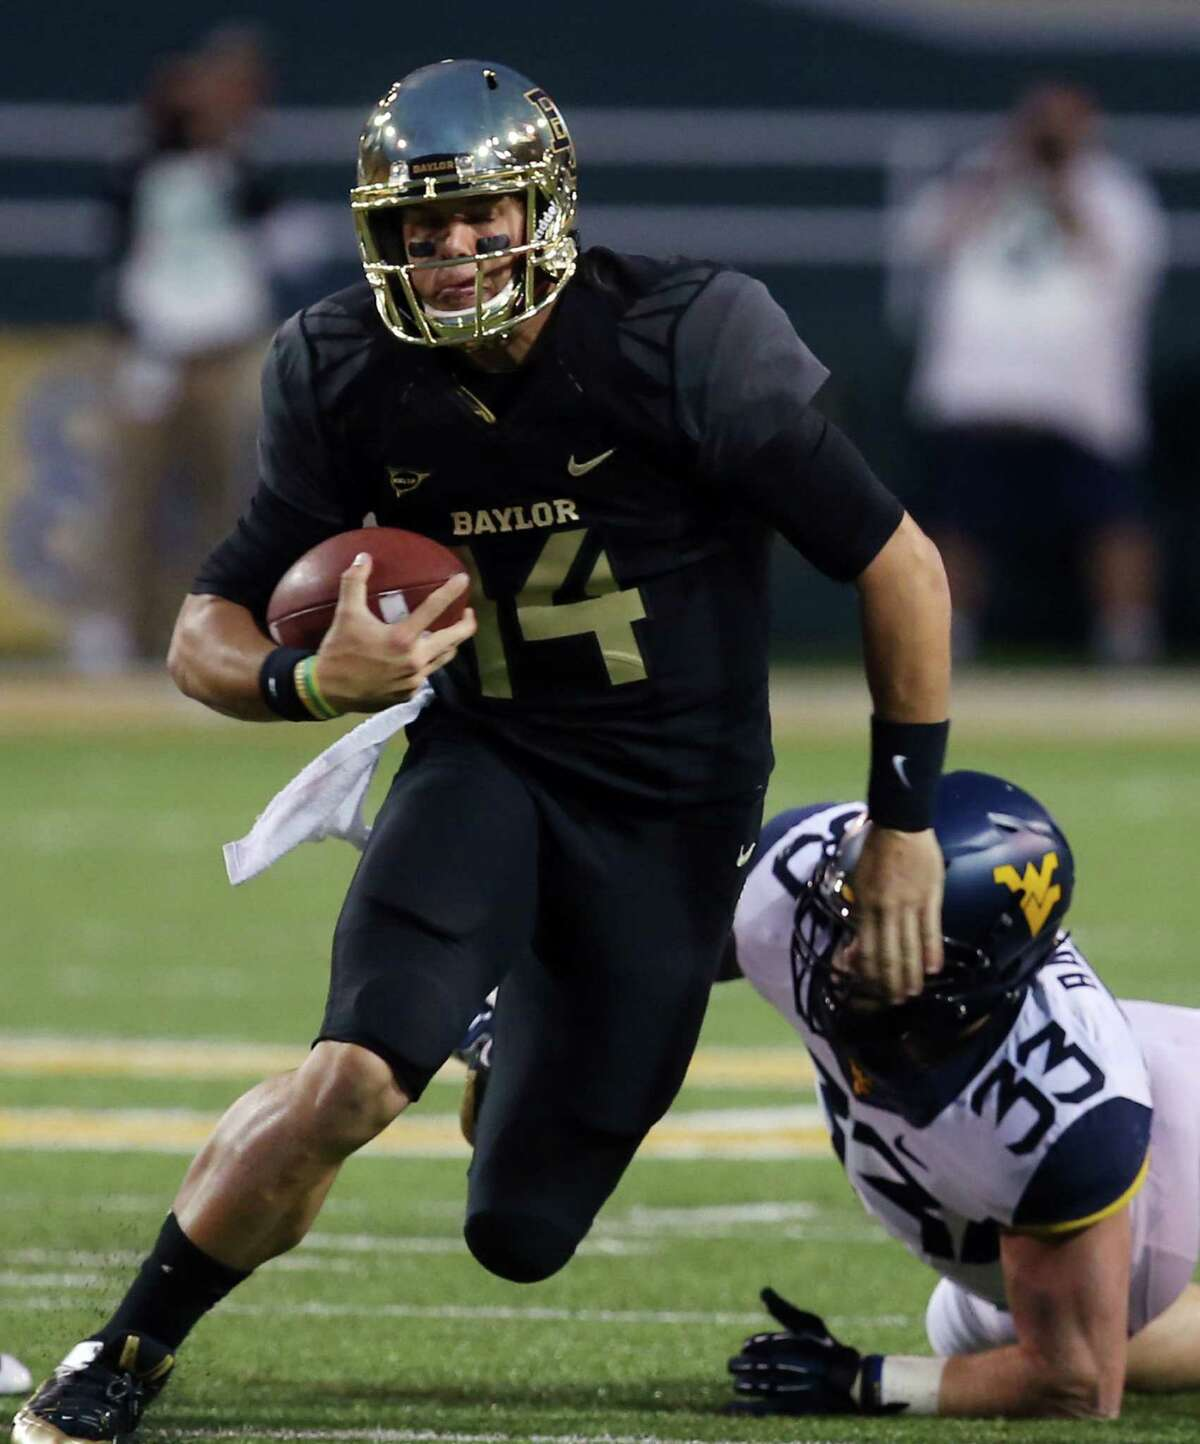 Best hope - The Bears' prolific offense keeps its record-setting pace as their opposition turns stiffer. Biggest worry - Somebody figures out how to slow Baylor's offense, exposing their defense in the process. Curious factoid - The combined record of Baylor's remaining opponents in 28-10, with TCU accounting for five of those losses. Baylor's first seven opponents had a combined record of 24-29.Prediction - 11-1, 8-1 Bowl - Fiesta